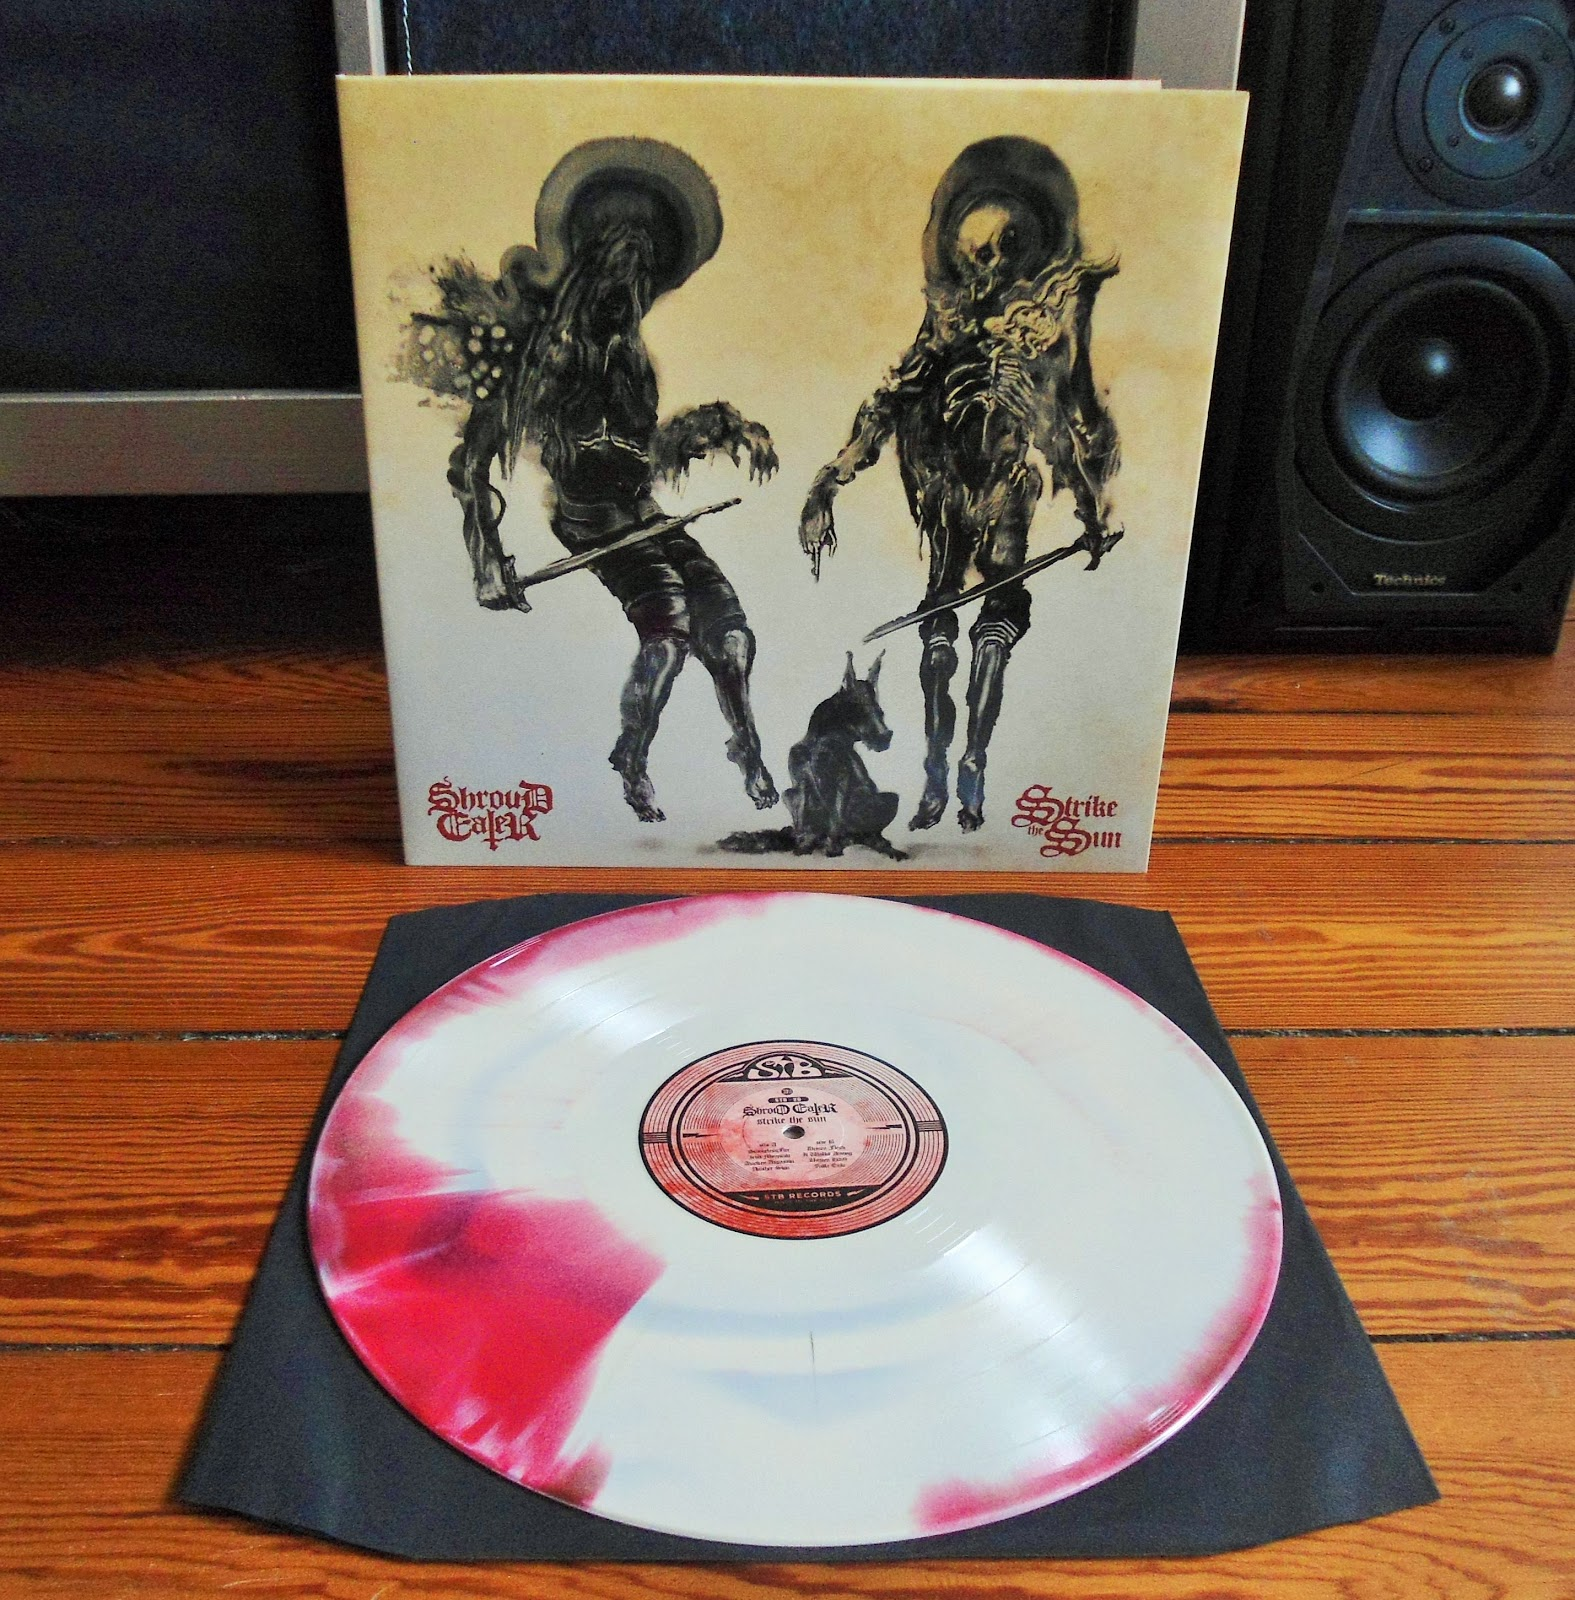 sun strike Strike the sun by shroud eater - stb-26, released 07 july 2017 1 smokeless fire 2 iron mountain 3 awaken assasin 4 another skin 5 dream flesh 6 it walks among 7 unseen hand 8 futile exile test press - limited to 15 units hand numbered special stb records wax seal alternate art work in pvc envelope style sleeve die hard edition - limted to 100 units.